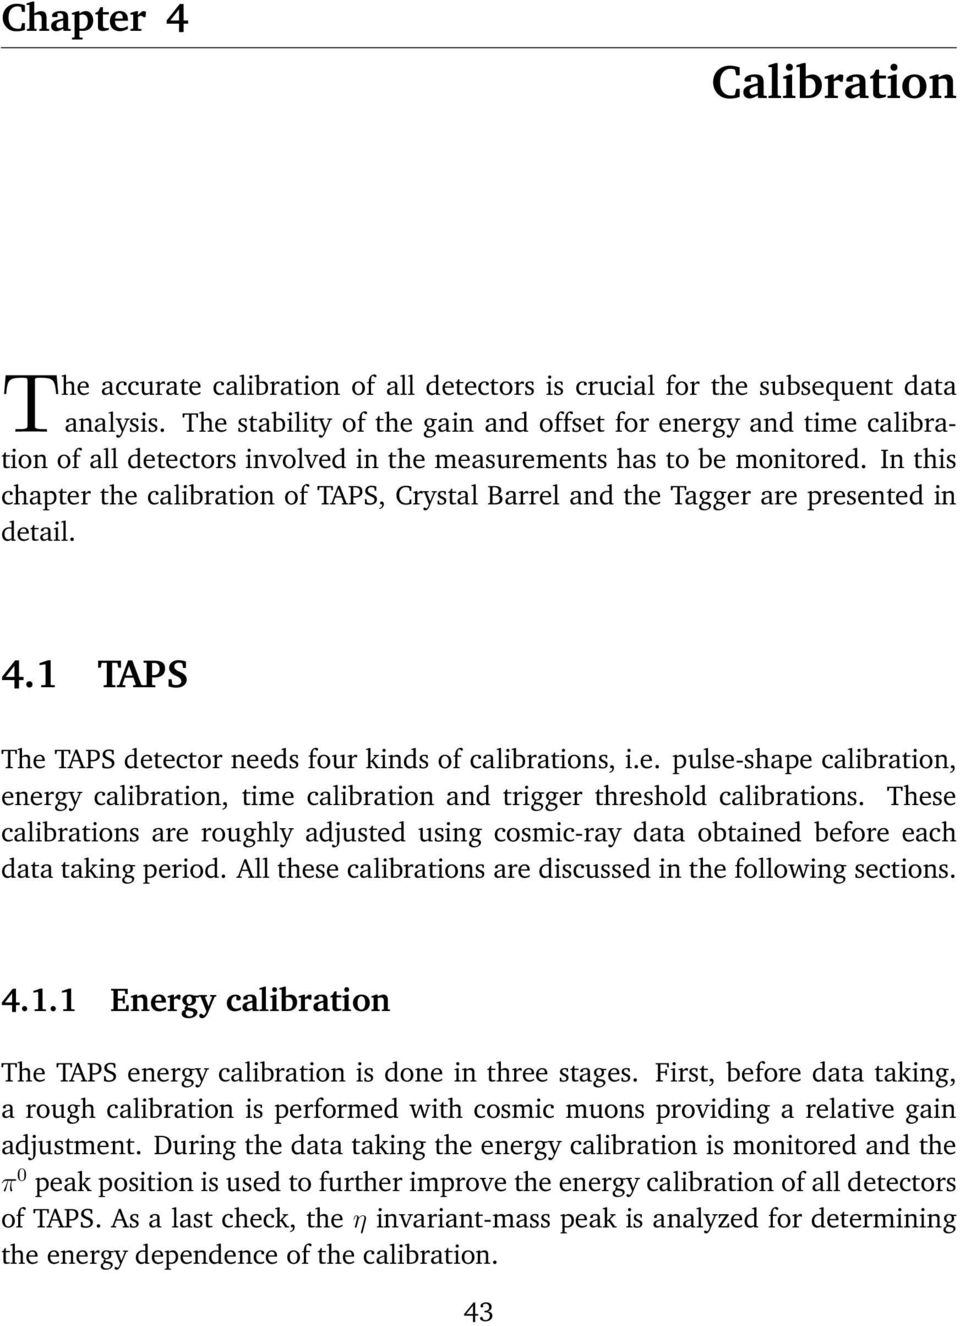 In this chapter the calibration of TAPS, Crystal Barrel and the Tagger are presented in detail. 4.1 TAPS The TAPS detector needs four kinds of calibrations, i.e. pulse-shape calibration, energy calibration, time calibration and trigger threshold calibrations.